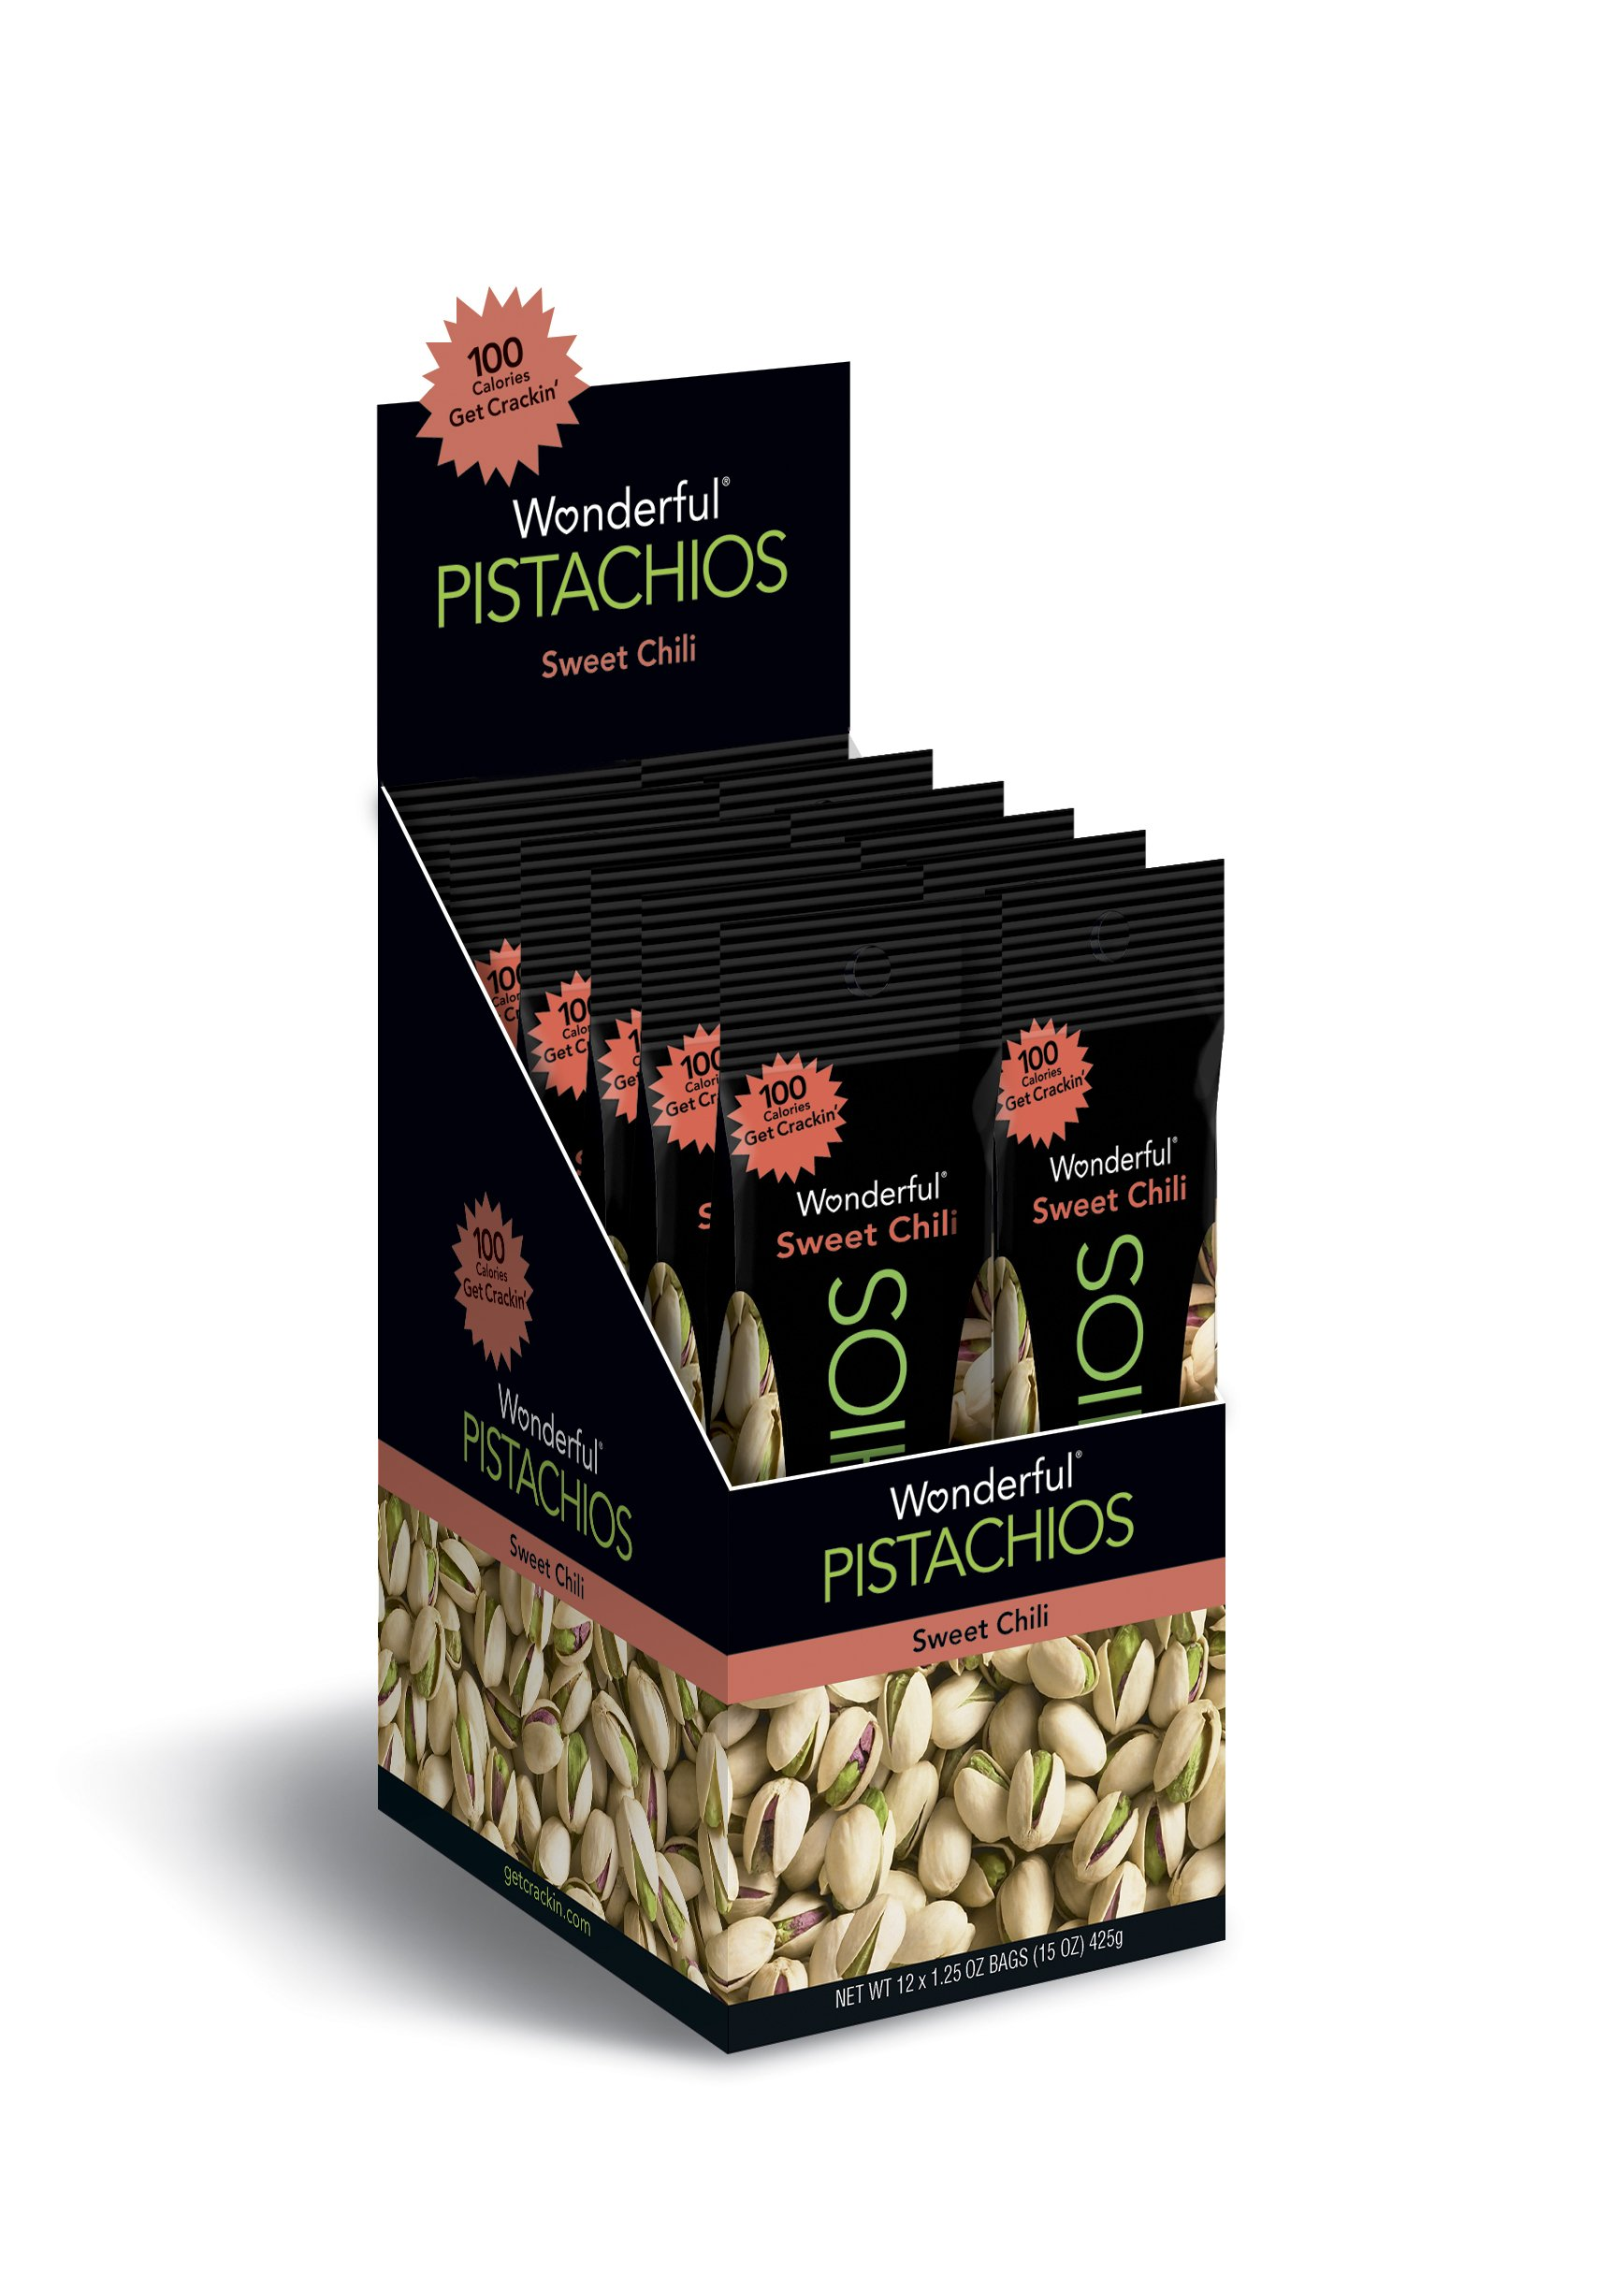 Wonderful Pistachios, Sweet Chili Flavored, 1.25 Ounce Bag (Pack of 12) by Wonderful Pistachios & Almonds